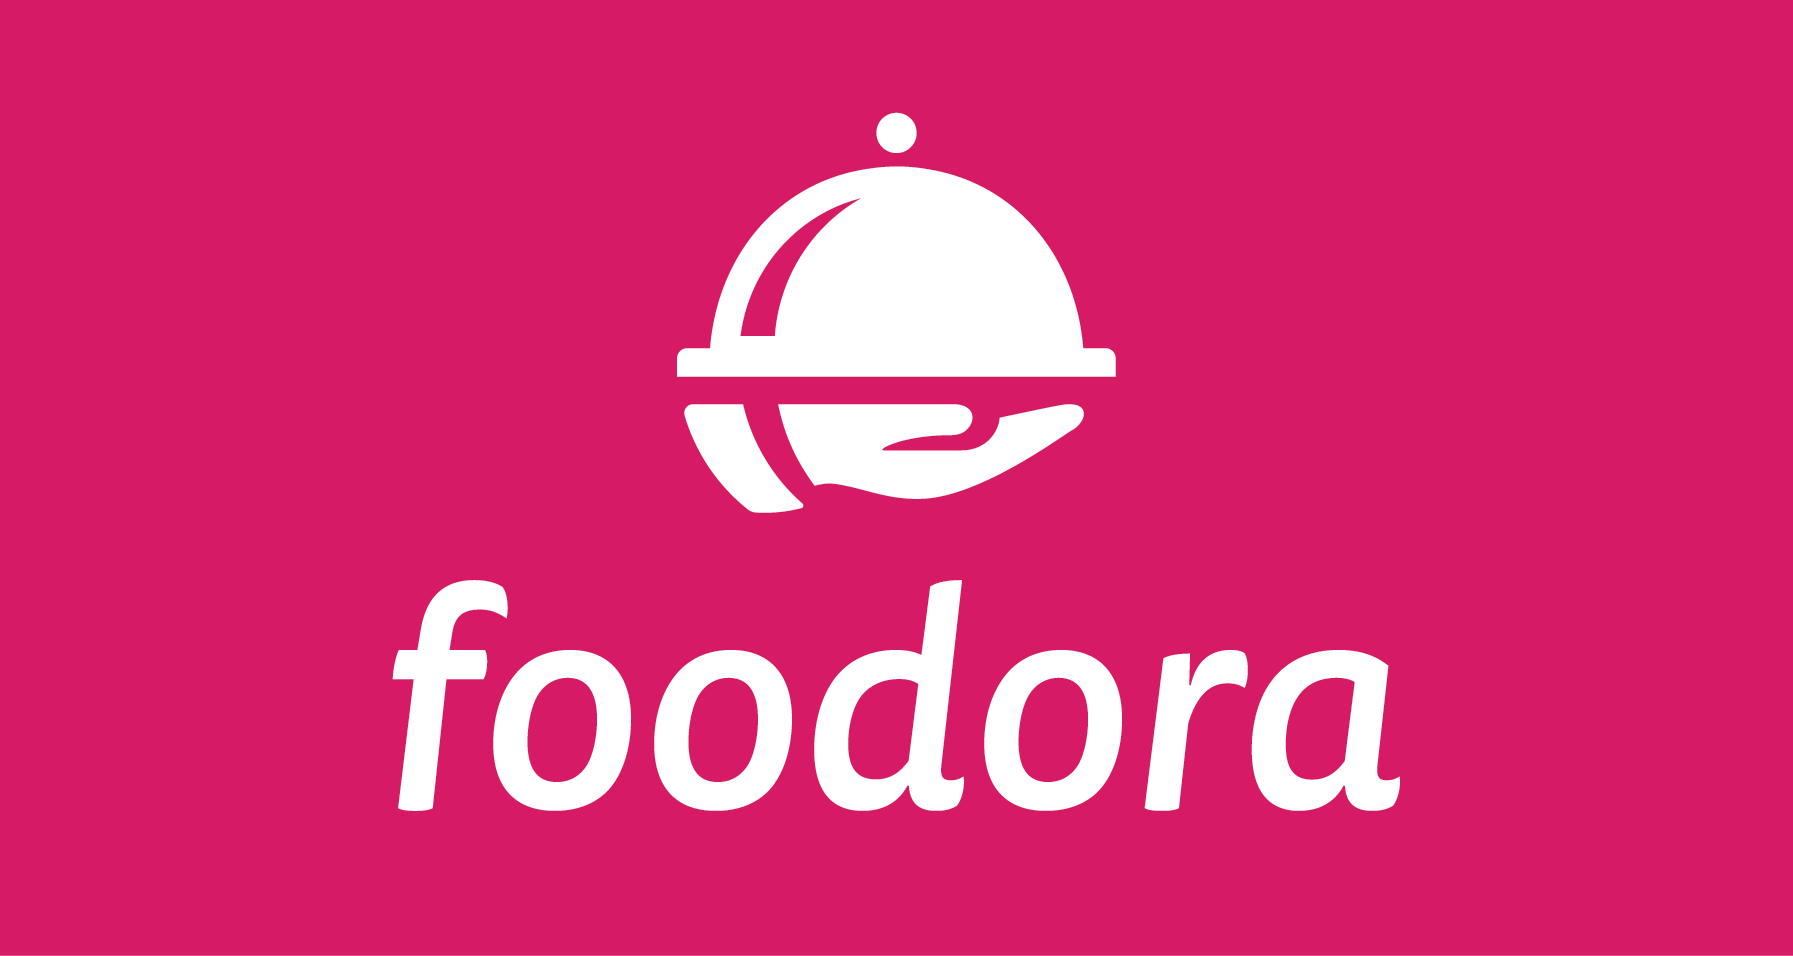 Grosvenor Hotel | Wood fired pizzas delivered through Foodora